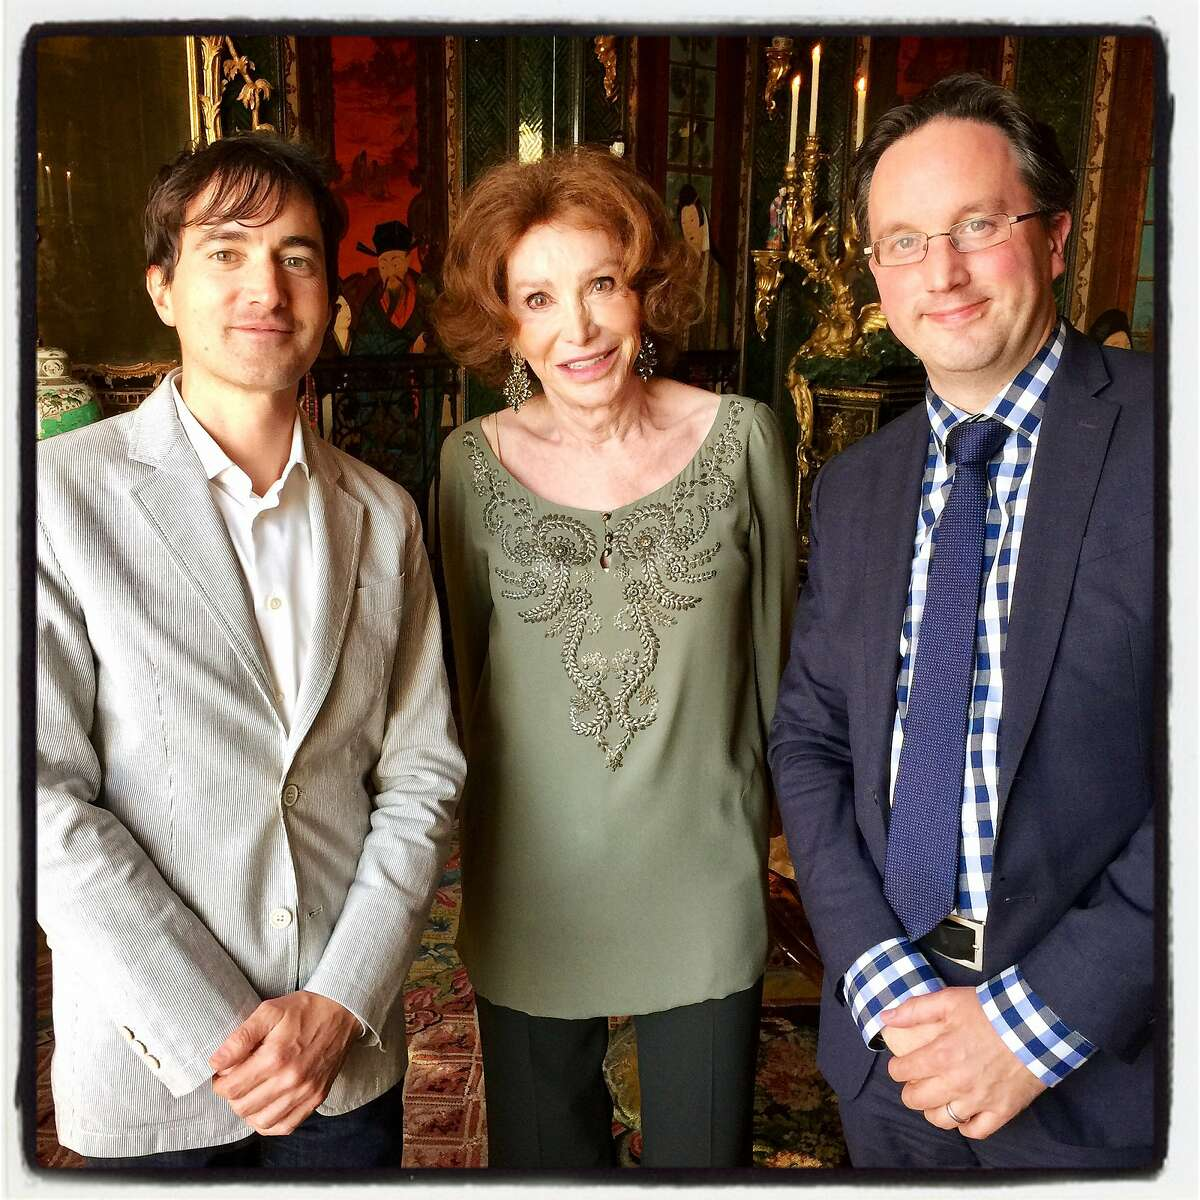 Composer Mason Bates (left) with Ann Getty and SF Opera General Director Matthew Shilvock at a listening party hosted by the Getty's. May 18, 2017.